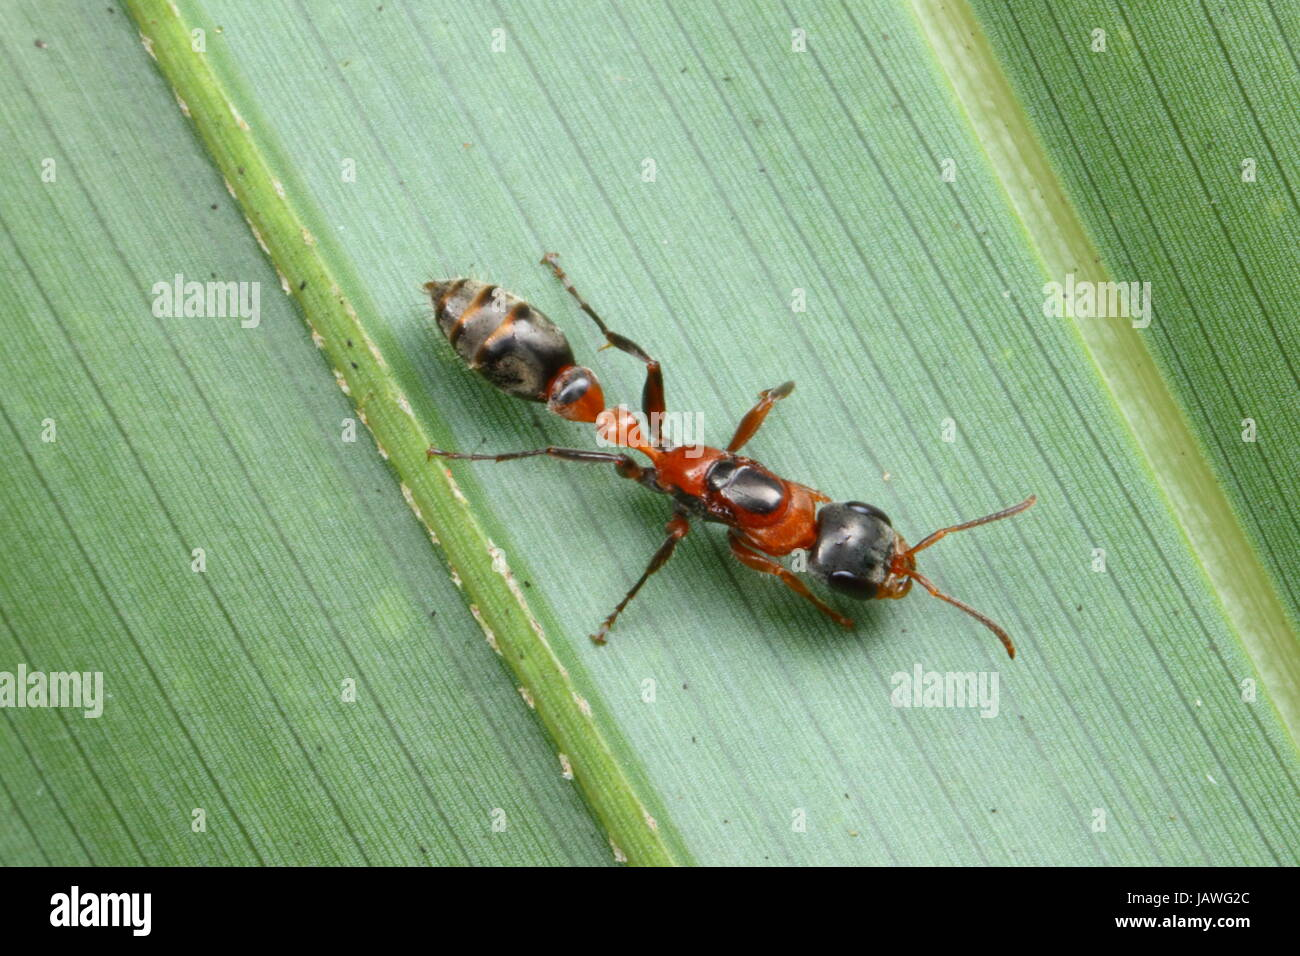 Elongate twig ants, Pseudomyrex gracilis, preys on live insects. - Stock Image